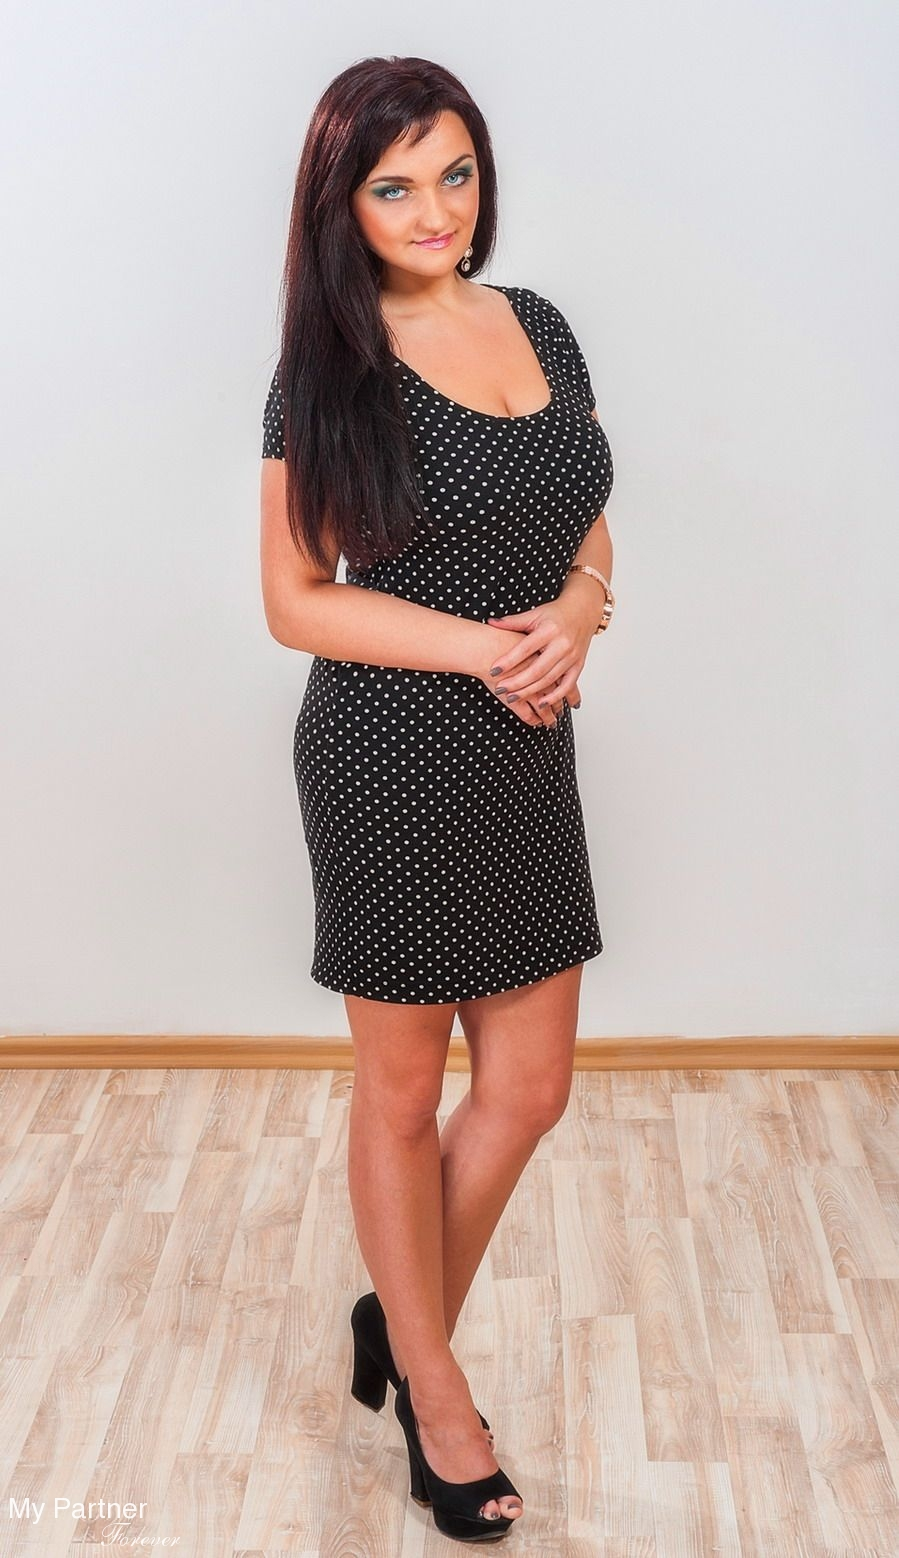 Online Dating with Gorgeous Belarusian Woman Ekaterina from Grodno, Belarus